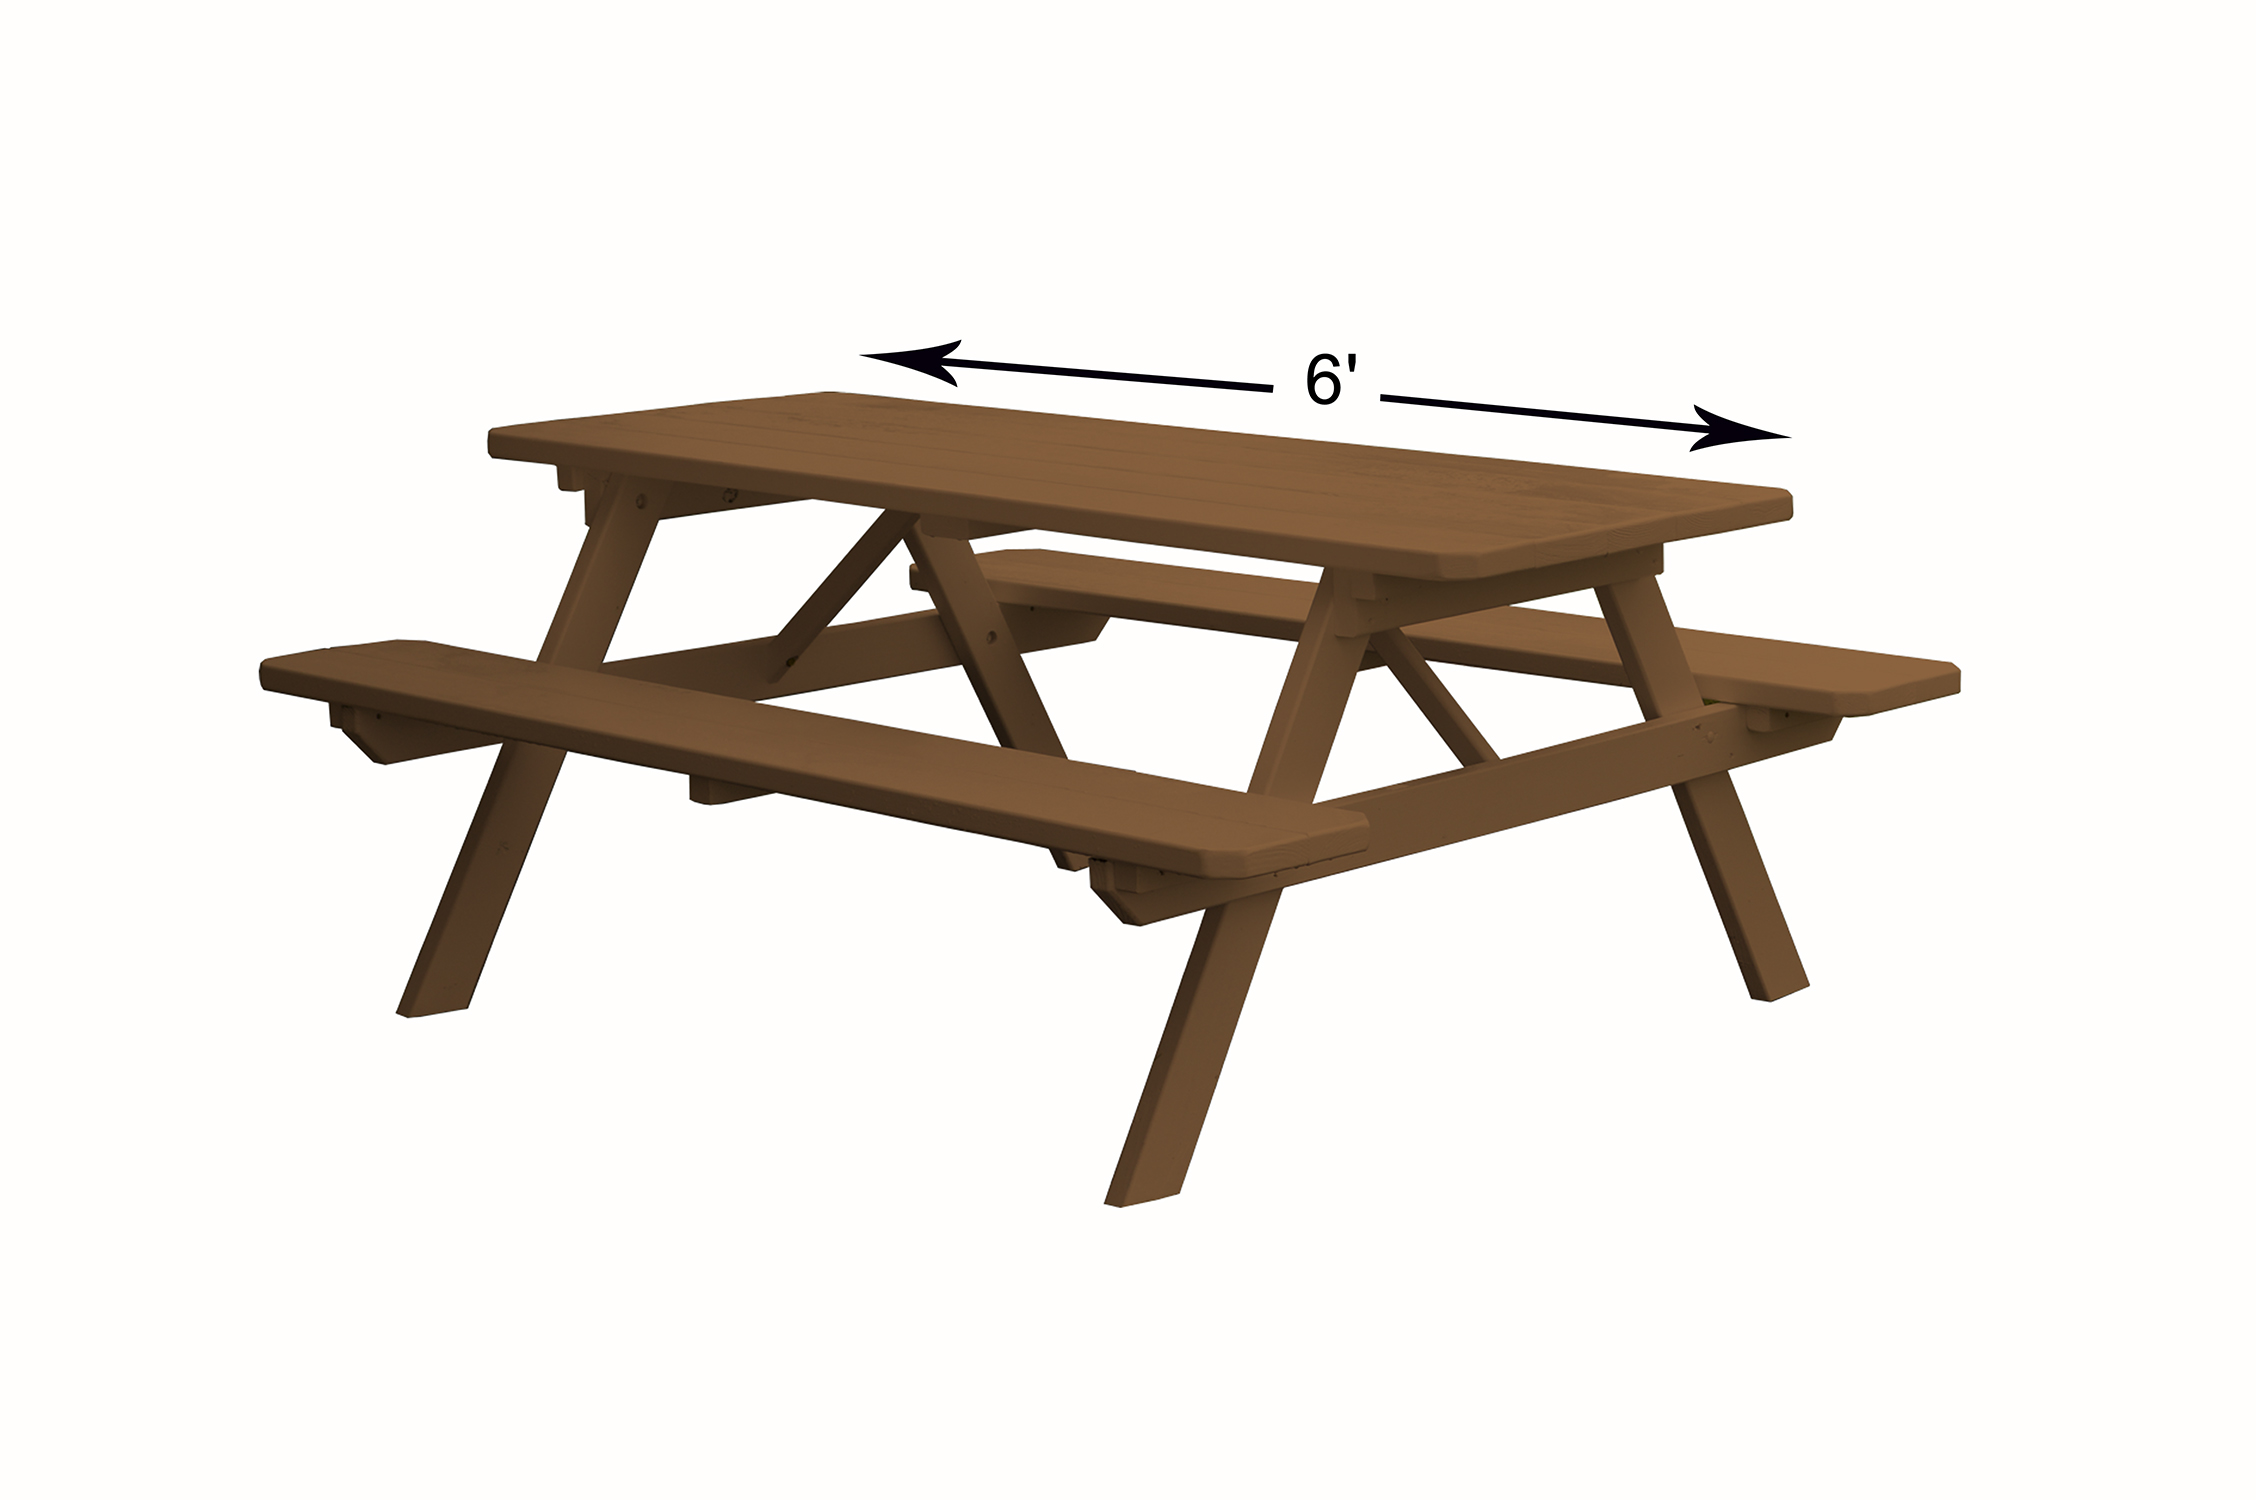 8 foot Wooden Picnic Table with Attached Wooden Benches by